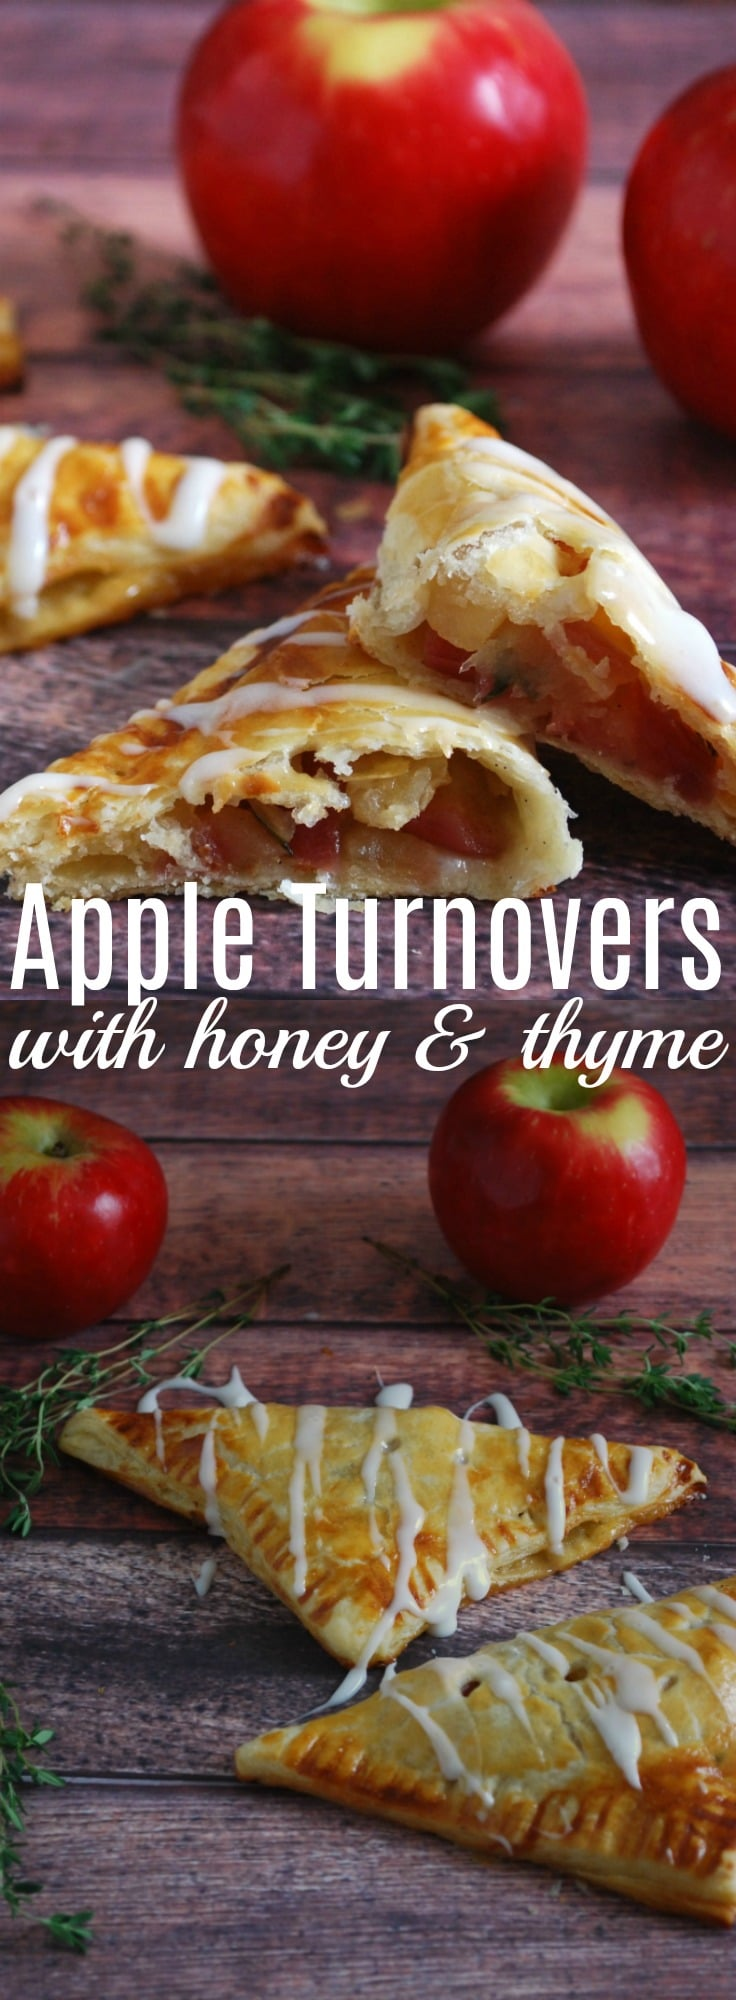 You will never believe how easy and delicious these apple turnovers are, made with a rustic homemade puff pastry and sweetened with honey and thyme. Apple Turnover Recipe, Apple with Honey and Thyme, Rustic Puff Pastry Recipe,